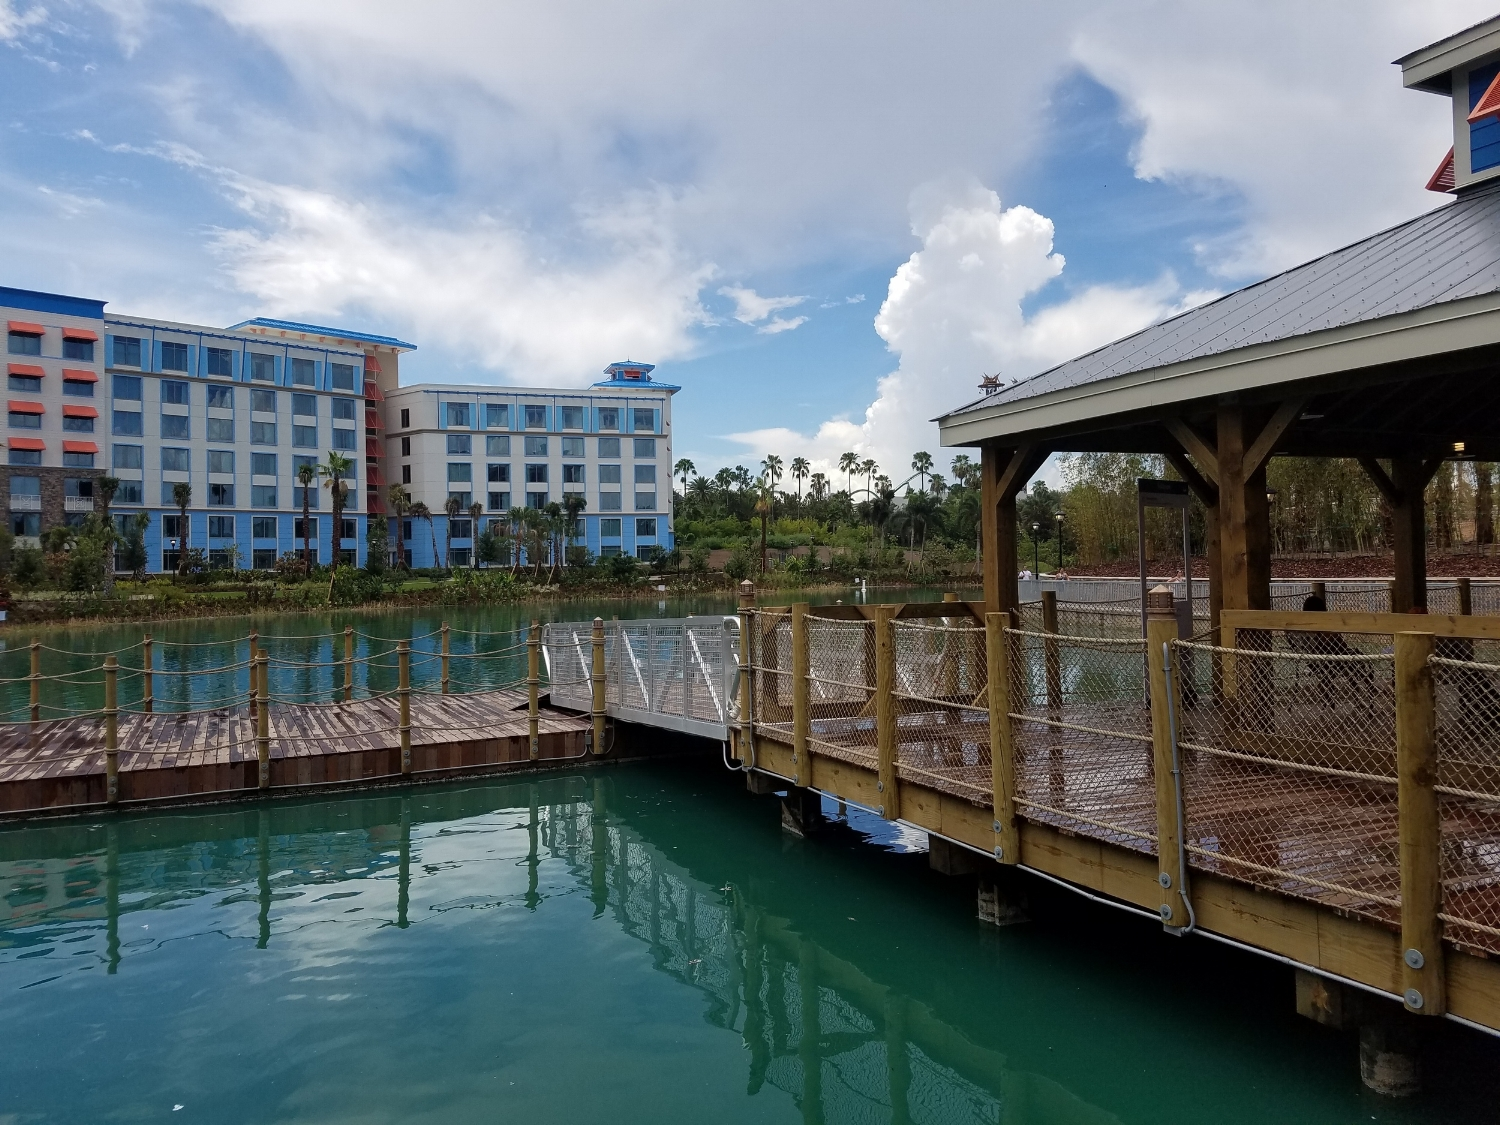 Empty Water Taxi Dock at Loews Sapphire Falls Resort